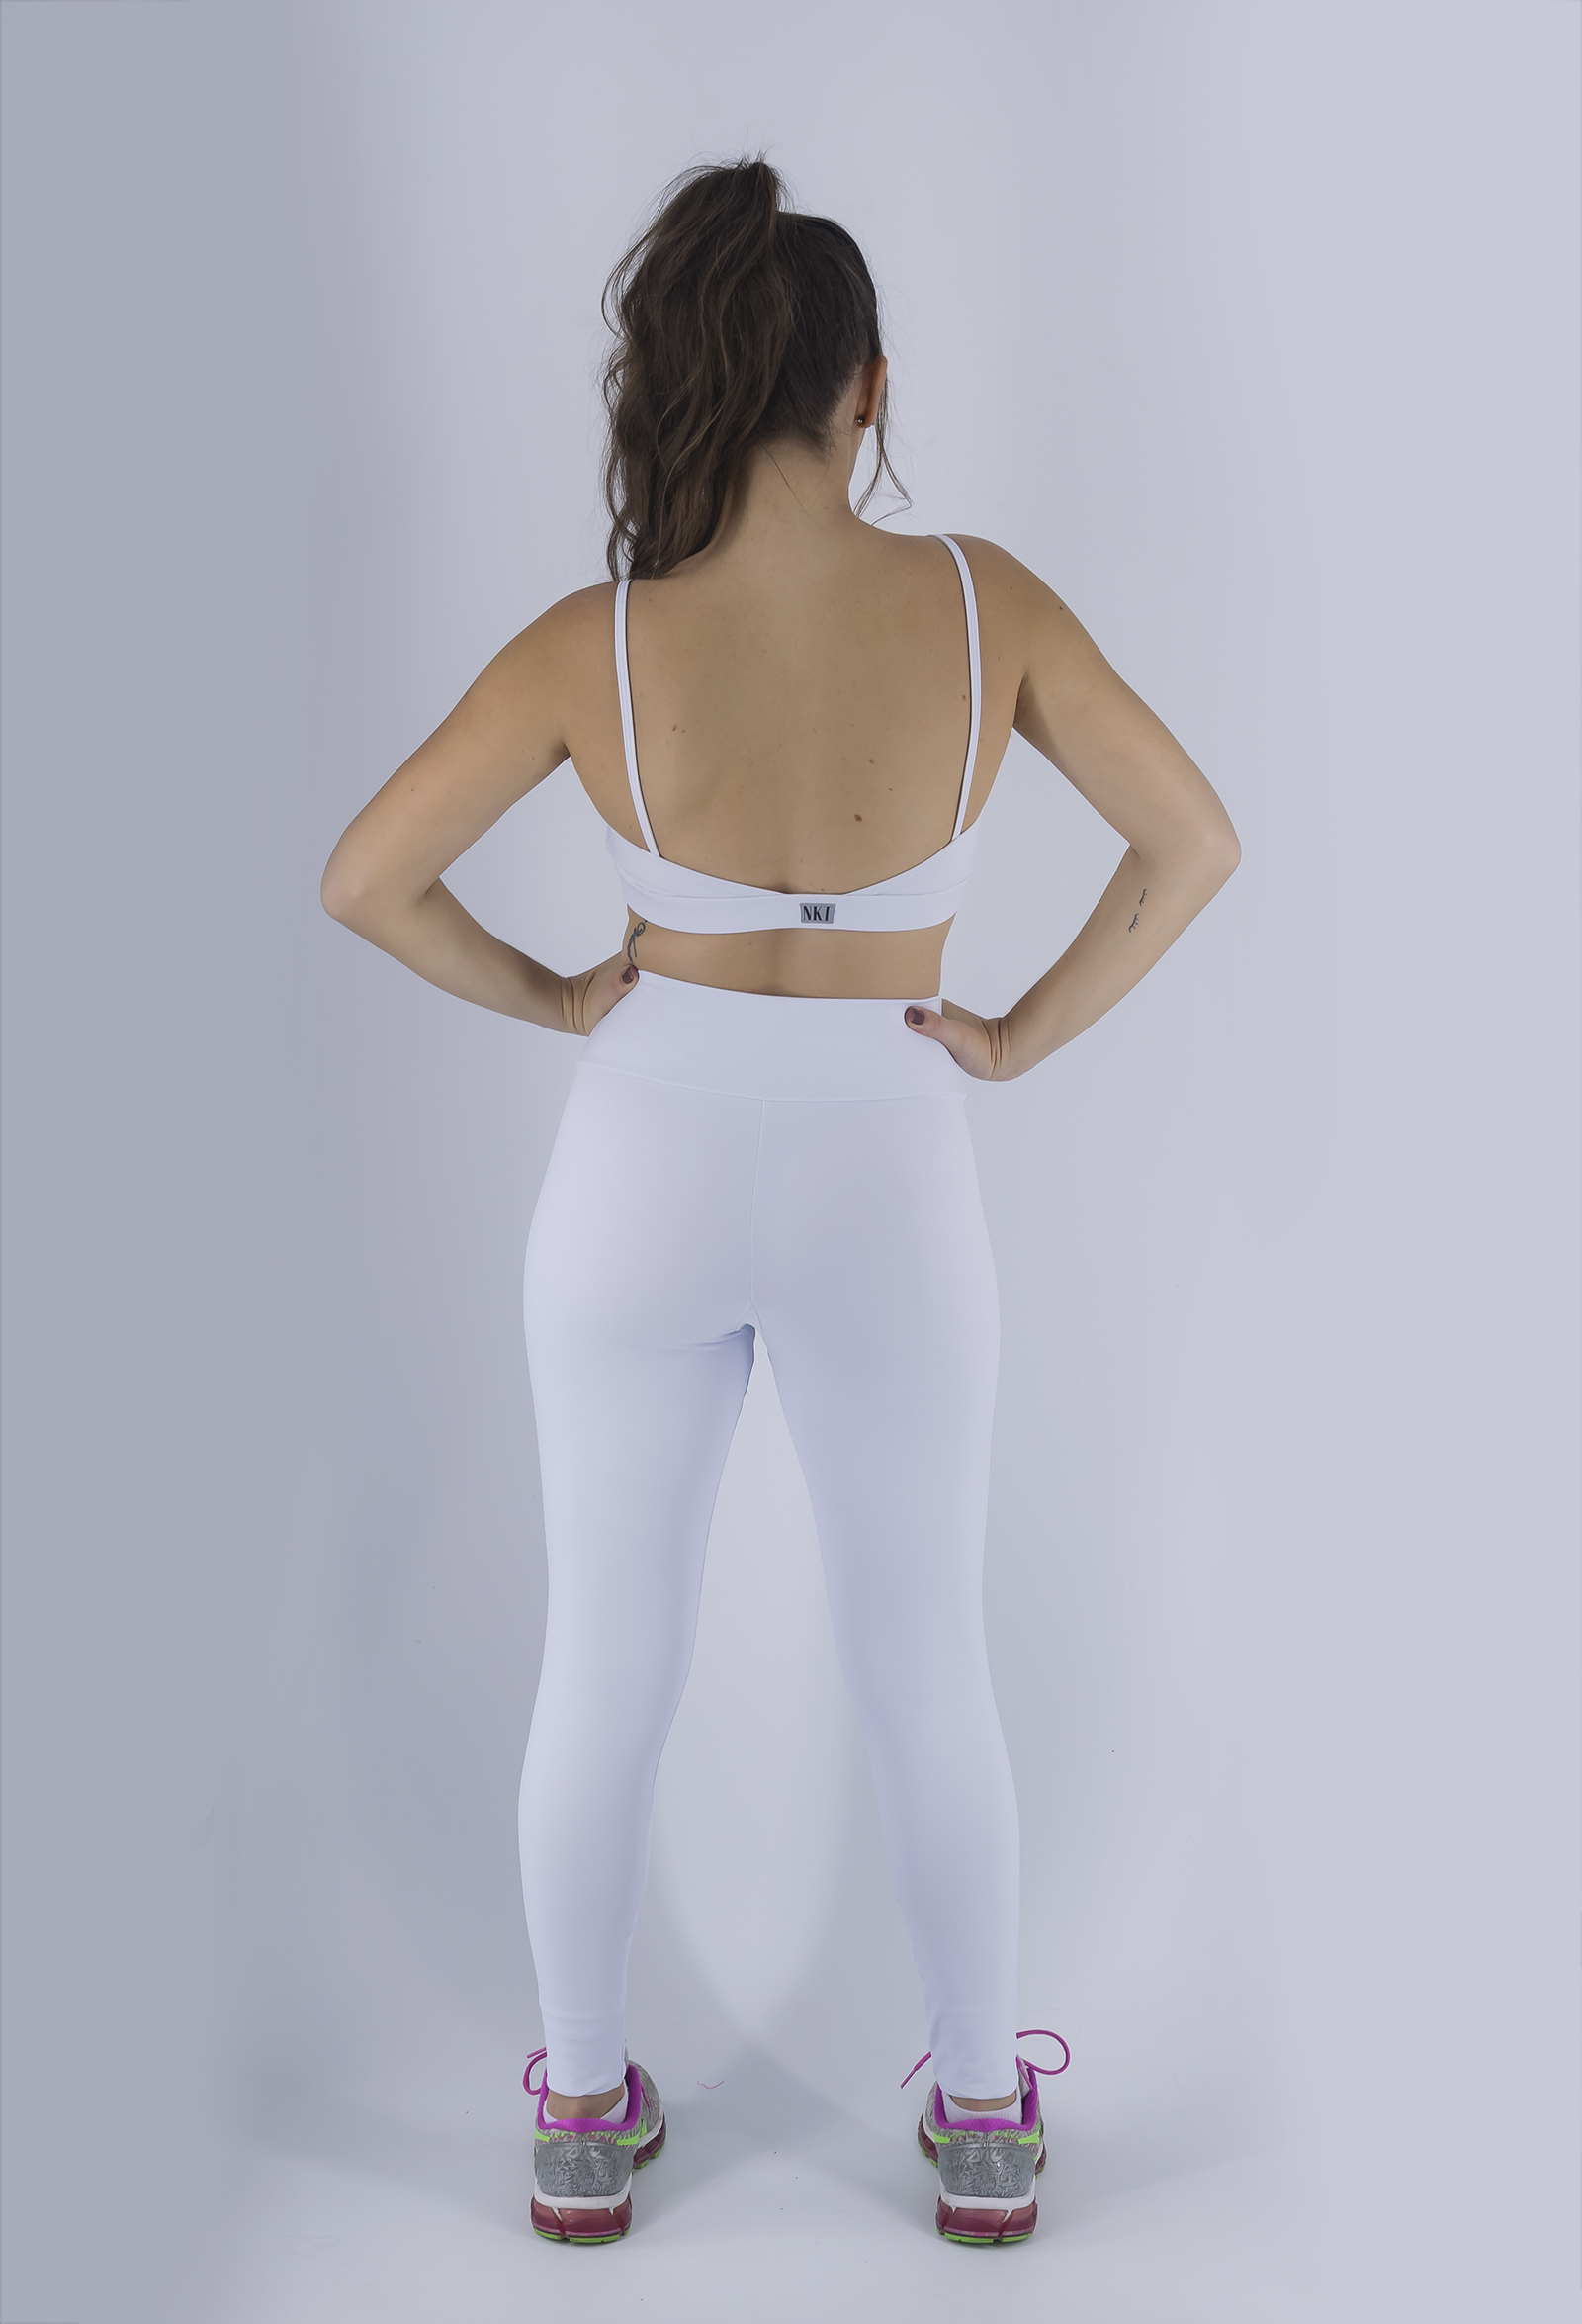 Top Profusion Branco, Coleção Just For You - NKT Fitwear Moda Fitness